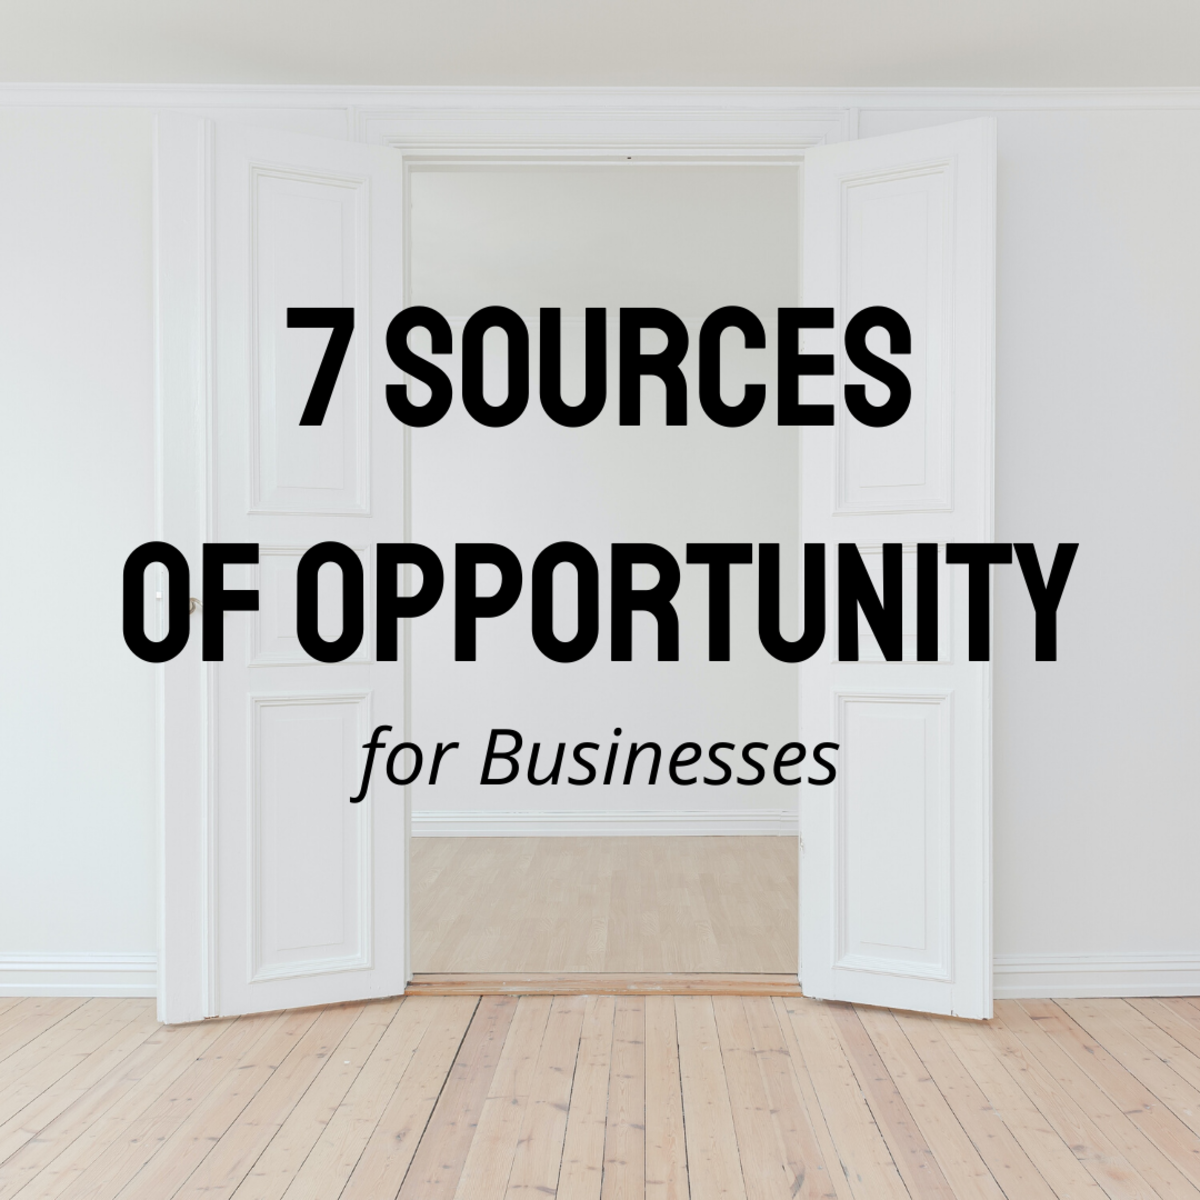 Discover the seven sources of opportunity as laid out by Peter Drucker. See how they might apply to your business.